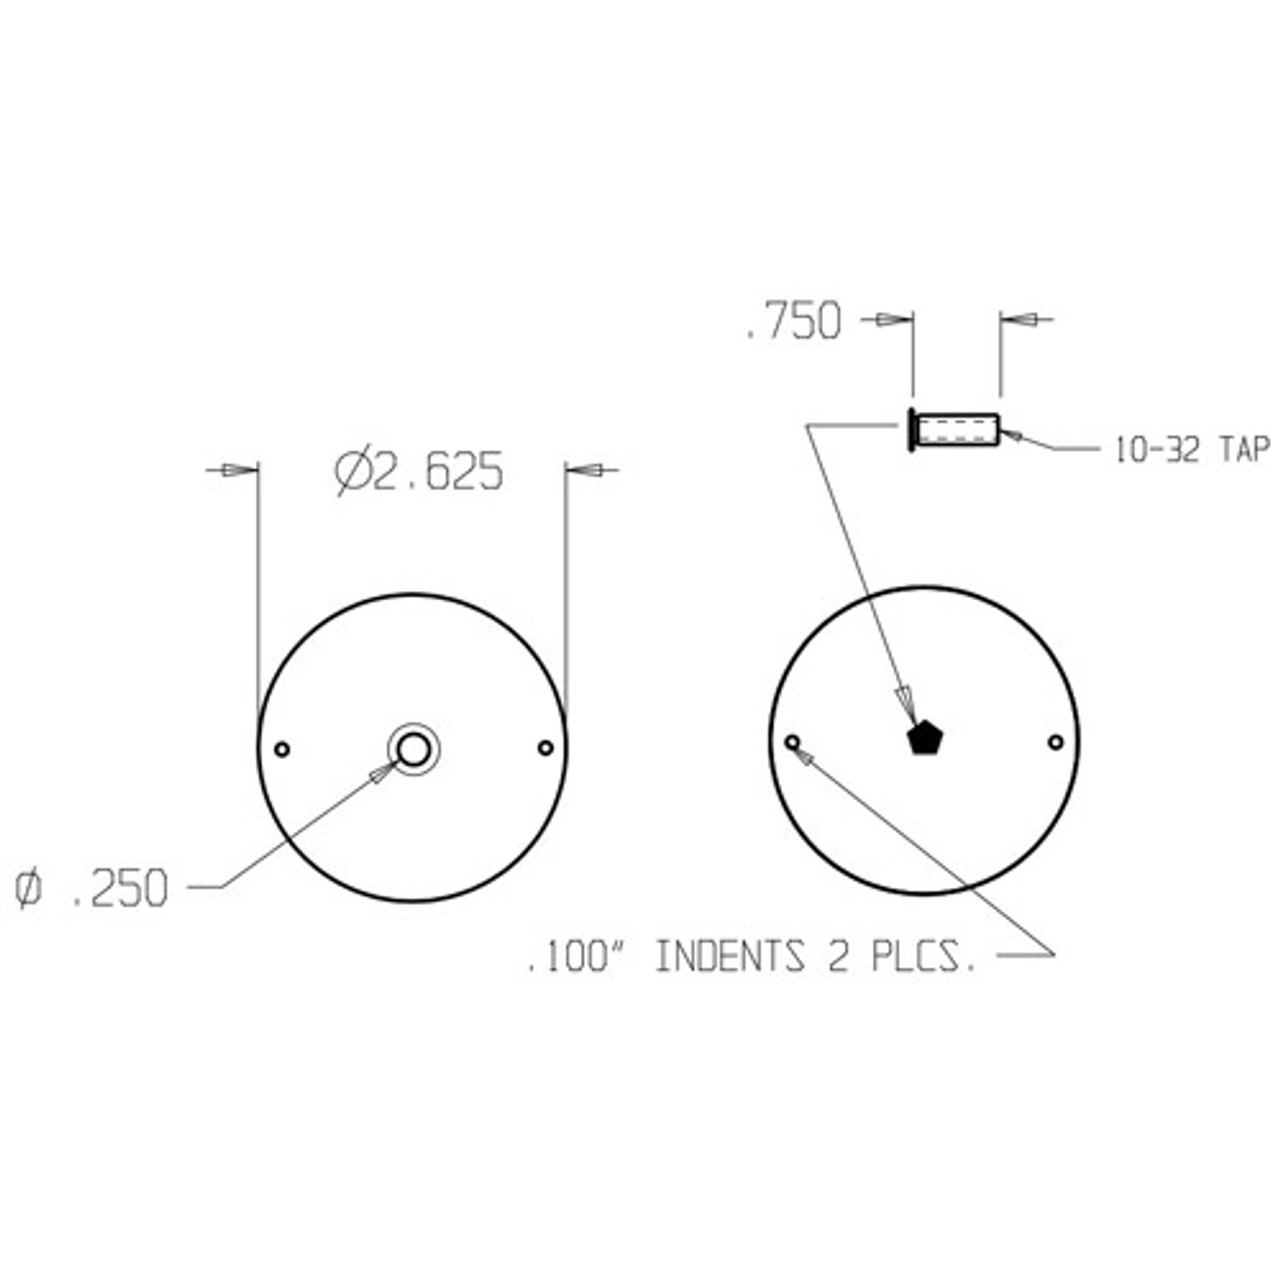 BF-161-DU Don Jo Hole Filler Plate Dimensional View